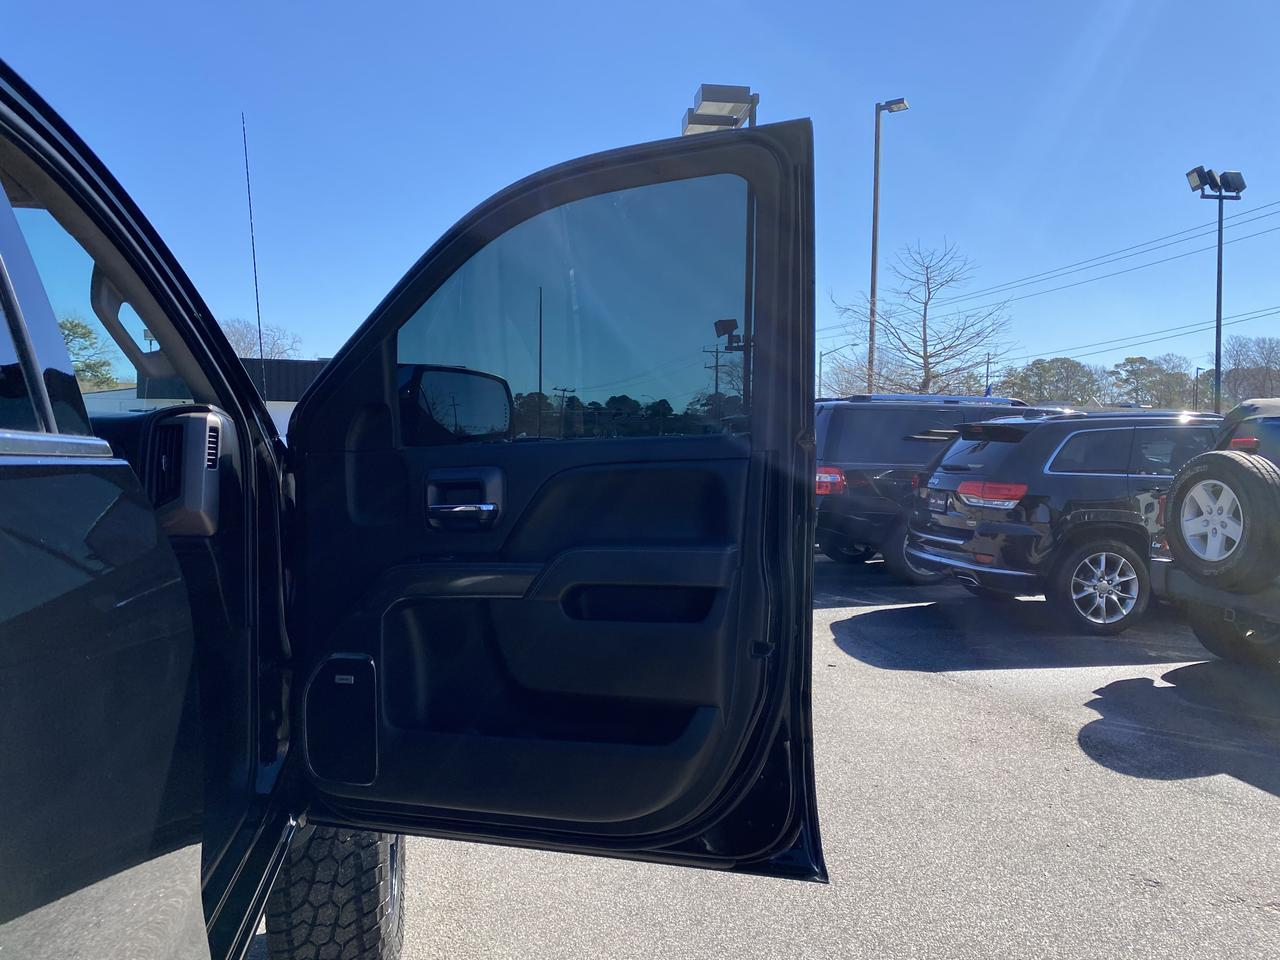 2014 GMC SIERRA 1500 SLE DOUBLE CAB 4X4, BOSE SOUND, HEATED SEATS, REMOTE START, BLUETOOTH, BACKUP CAM,CAMPER SHELL! Virginia Beach VA